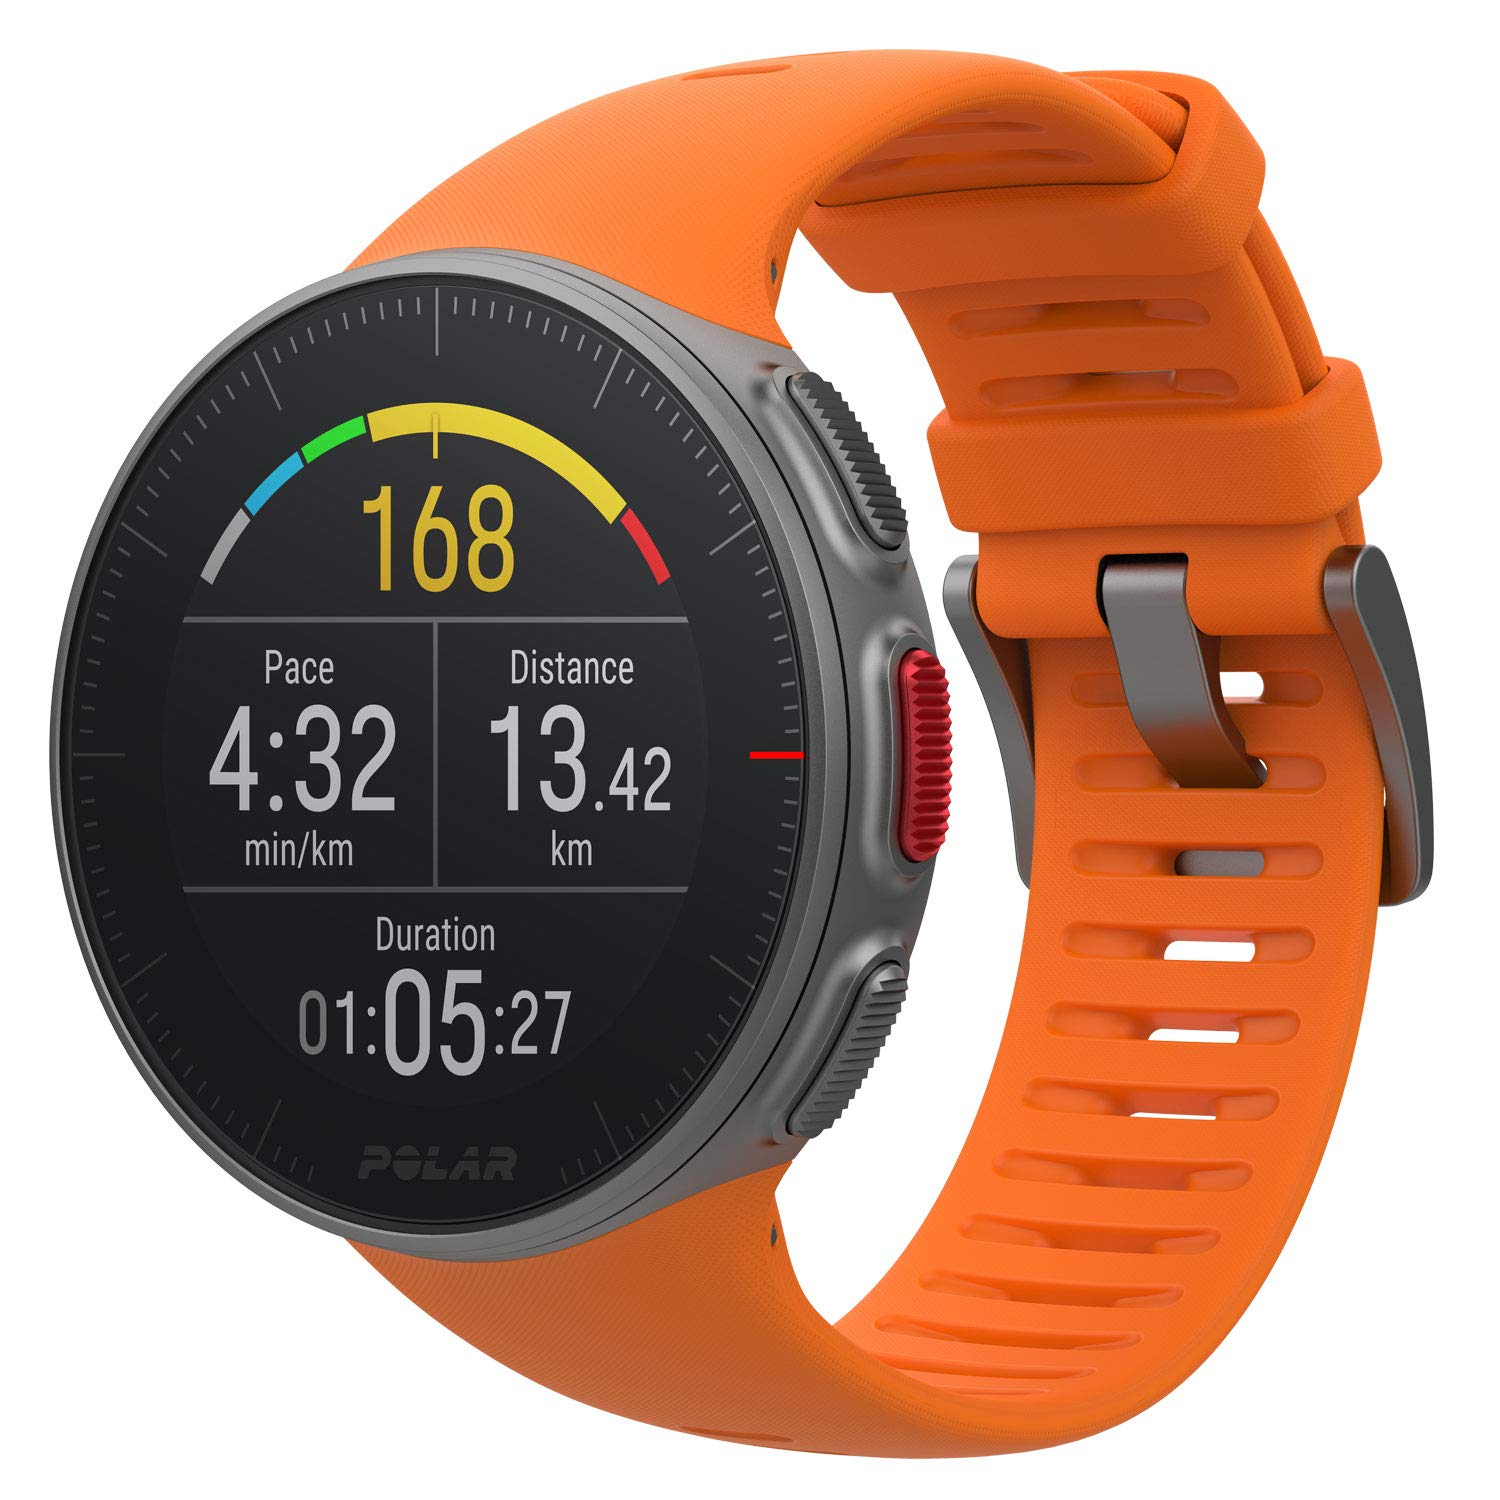 PlayBetter Polar Vantage V Pro Multisport Watch (Orange) Power Bundle Portable Charger & Screen Protectors | GPS & Barometer | Heart Rate by PlayBetter (Image #2)